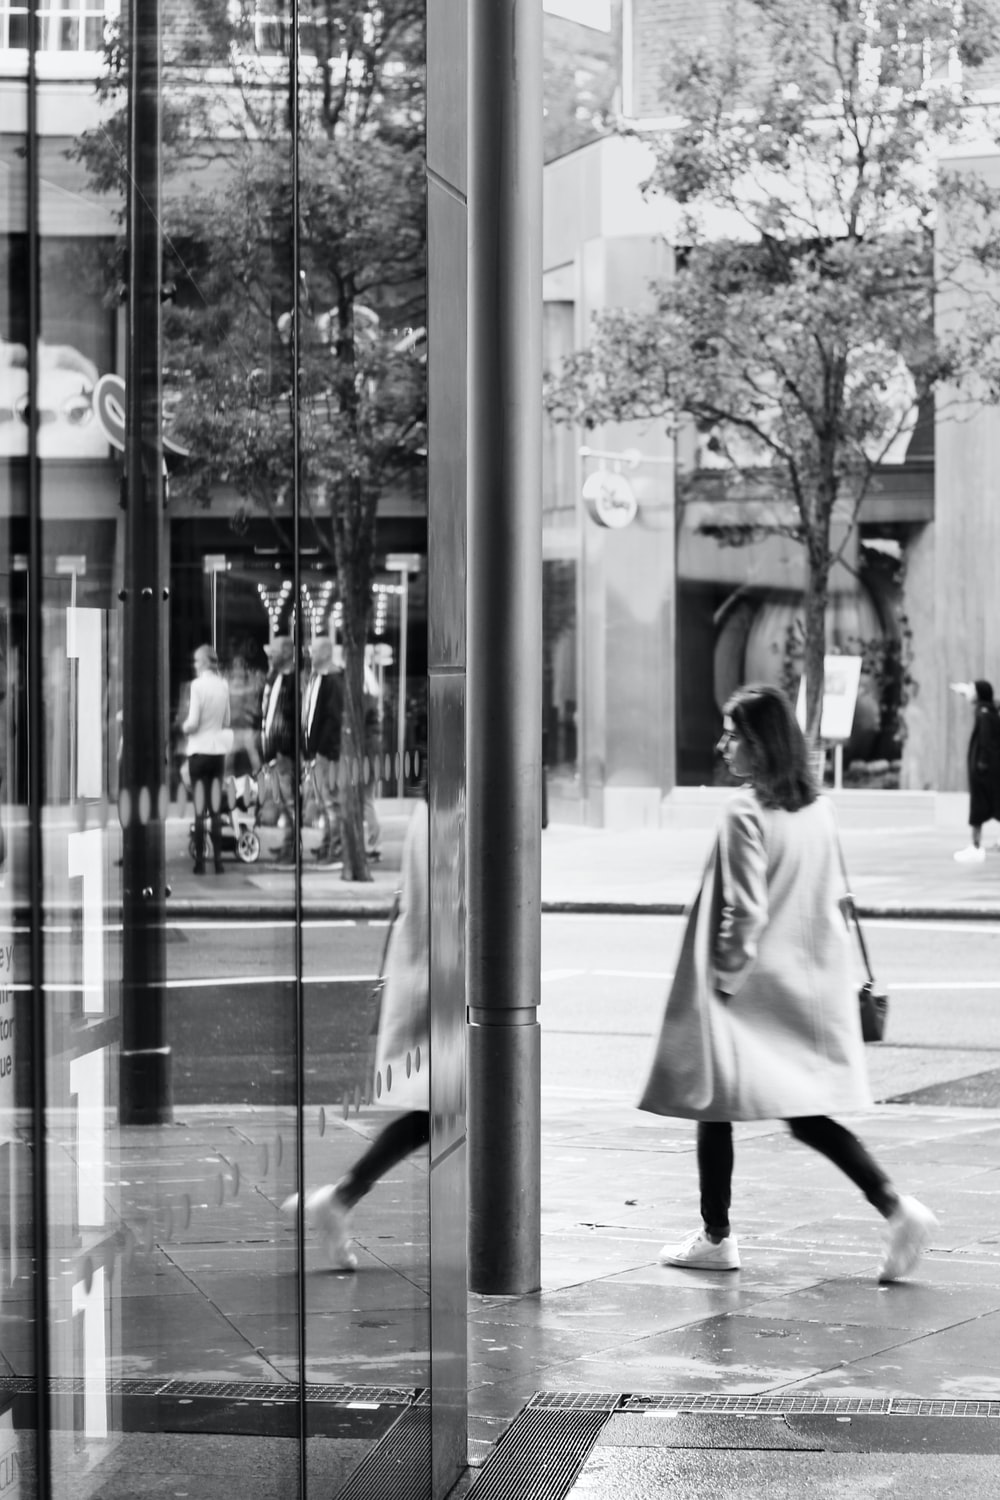 grayscale photo of woman in overcoat